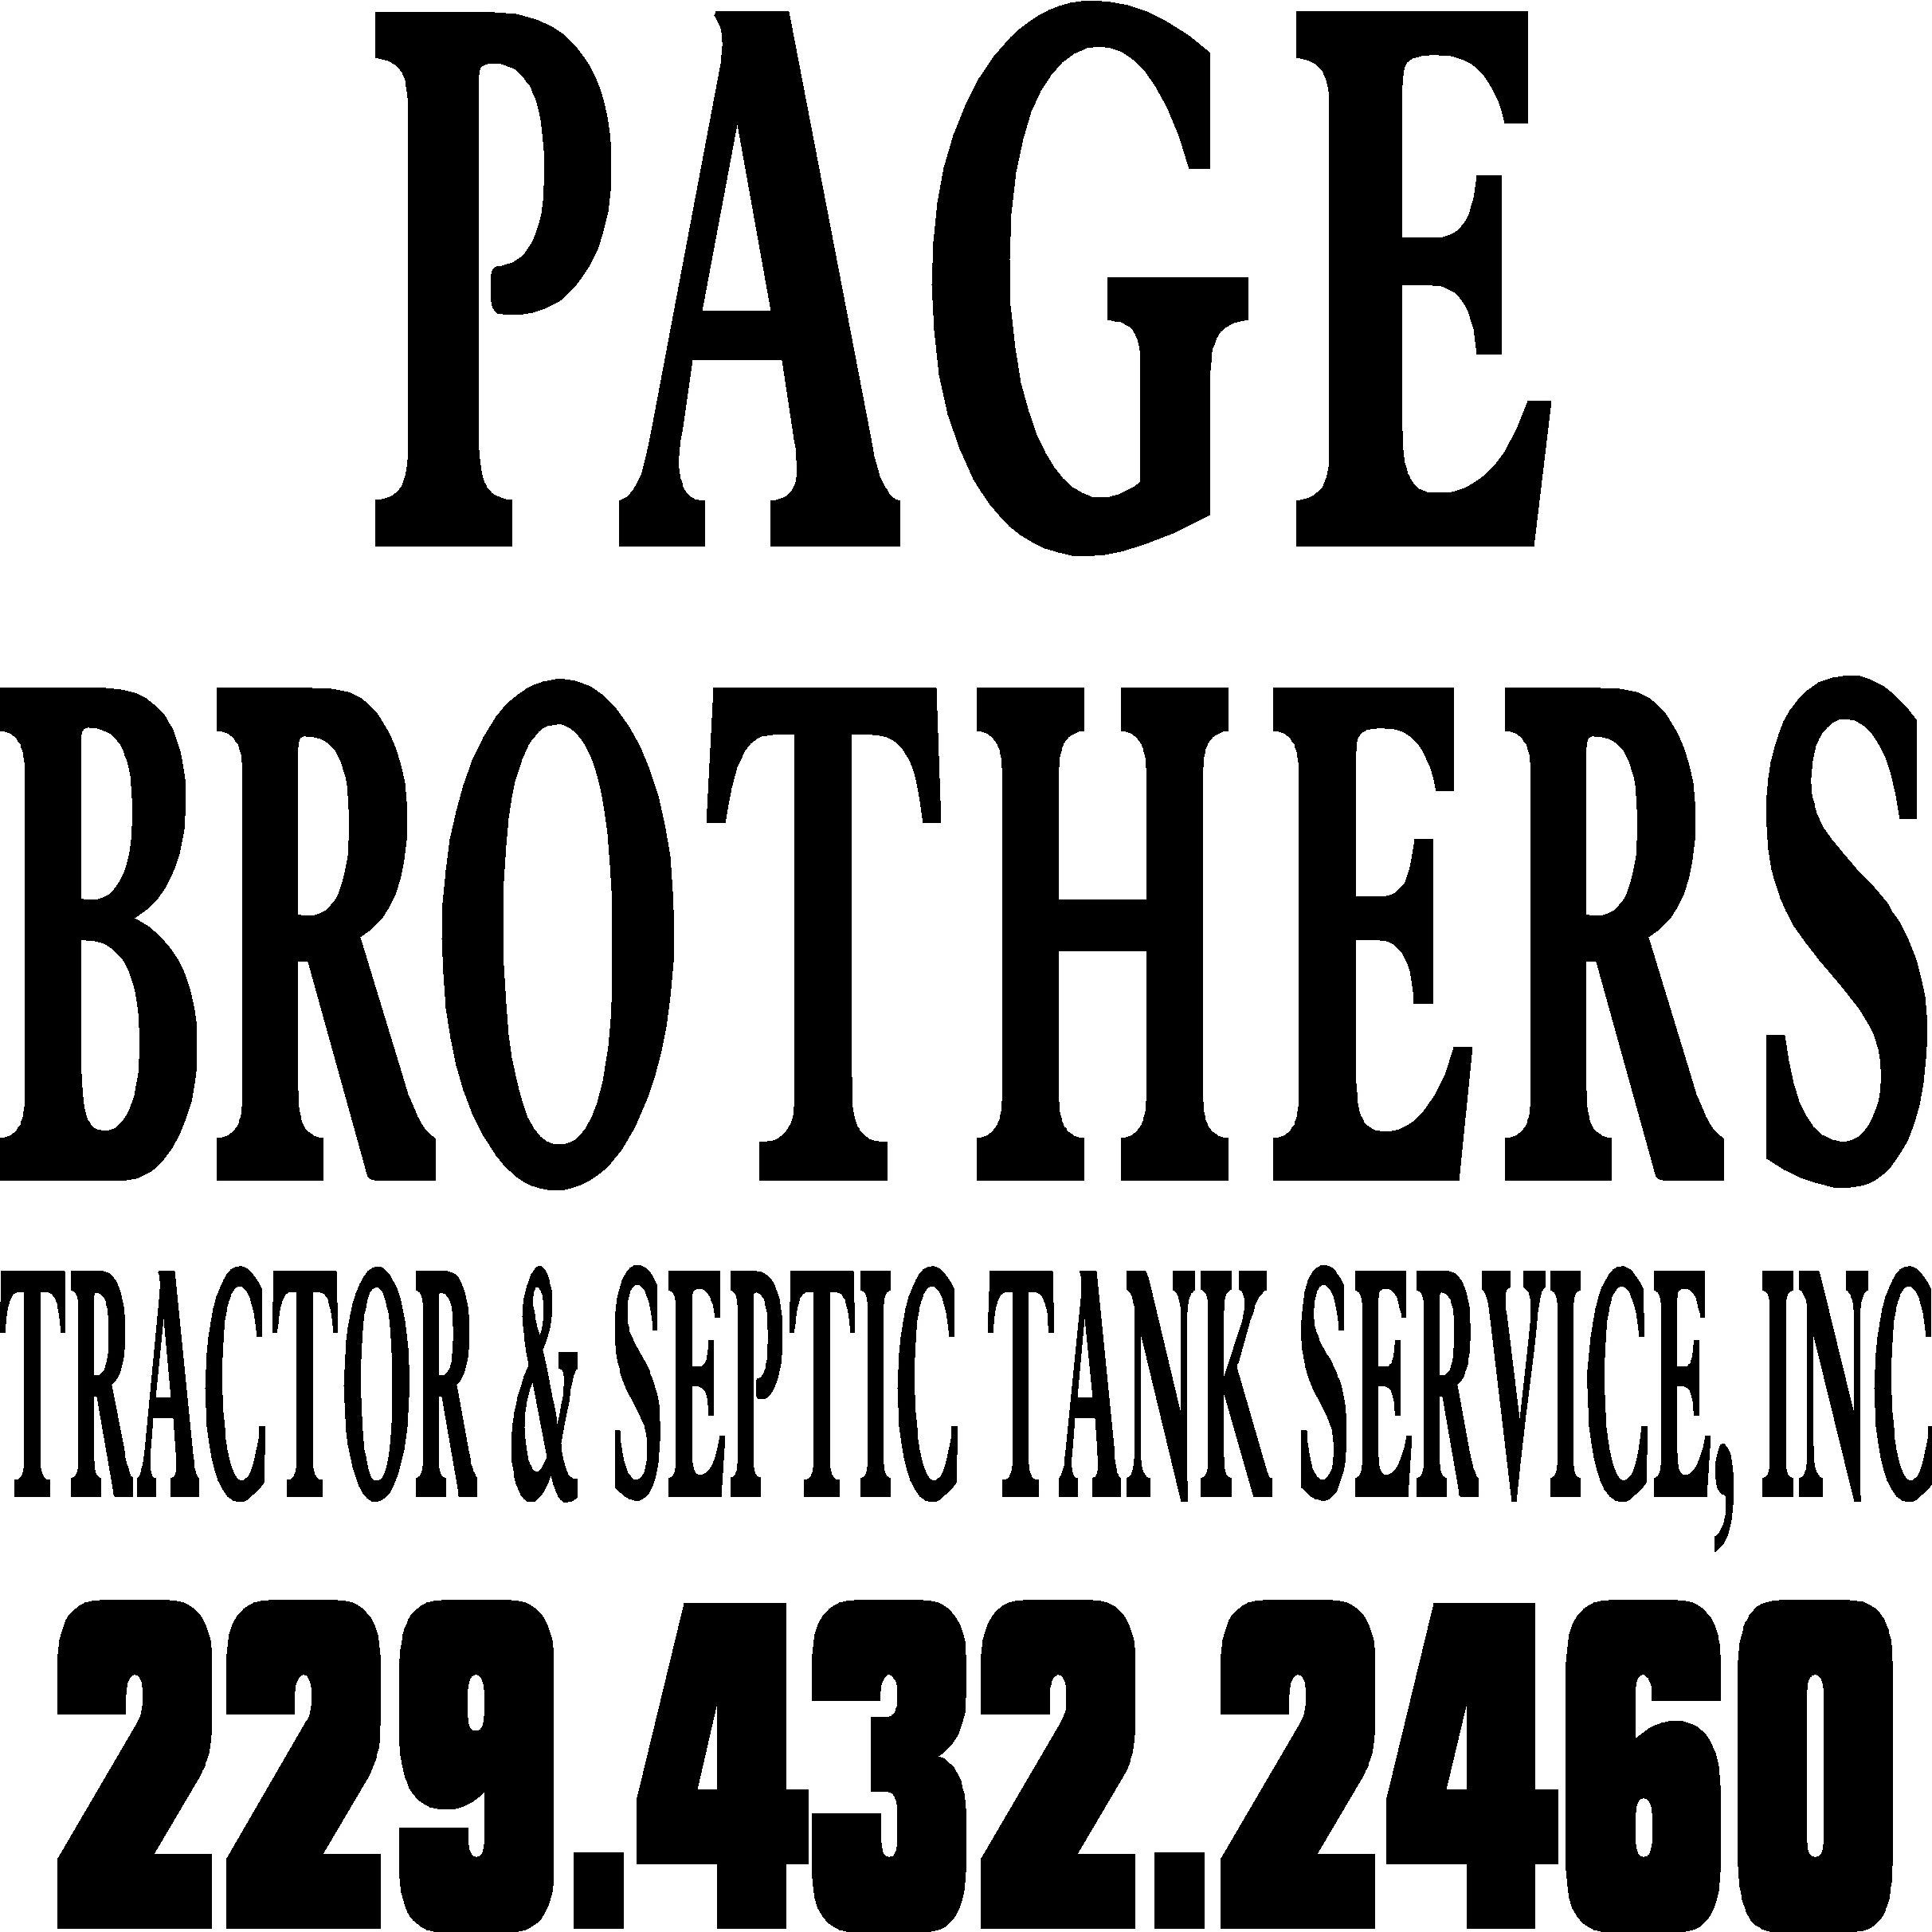 Business Directory For Leesburg, Ga  Chamberofcommercem. Wedding Planner Advertising Unr Social Work. Pre Approved Mortgage Calculator. Blue Cross Blue Shield Insurance Company. Raw Material Inventory Software. Cheap Electric Companies In Dallas Tx. Information Systems Graduate School. Can You Get A Car Loan With Bad Credit. Vehicle Paint Chip Repair Upmc Dental Clinic